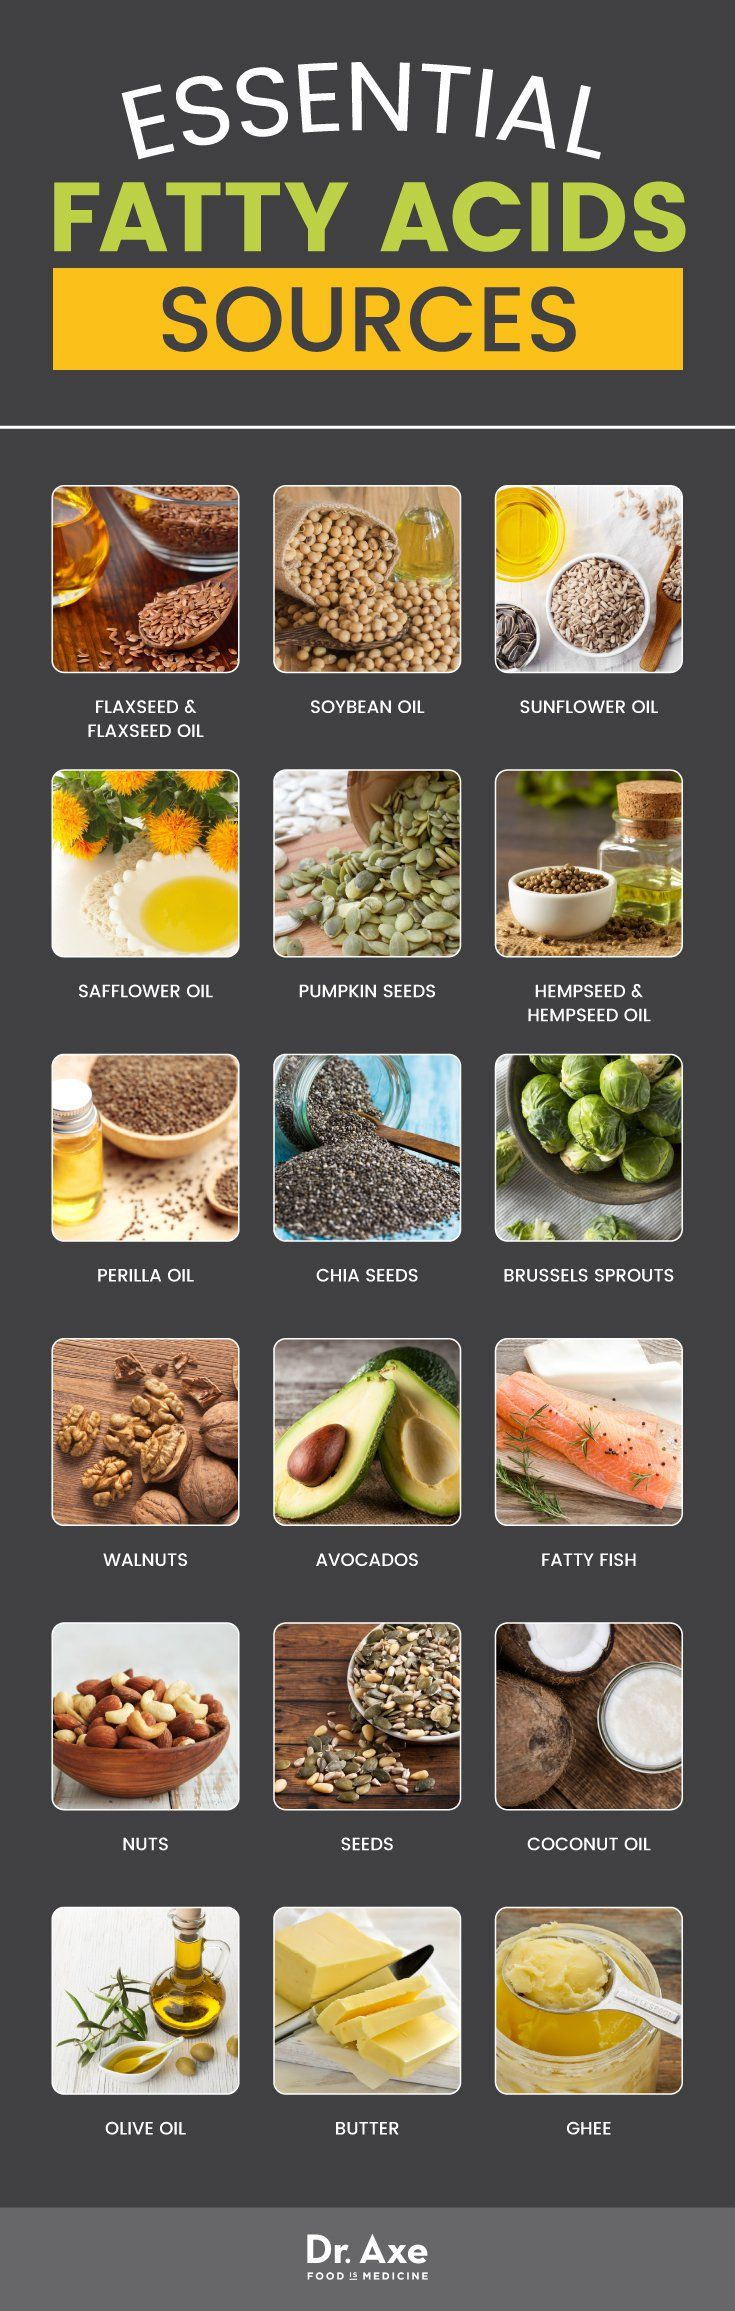 Essential fatty acids sources - Dr. Axe